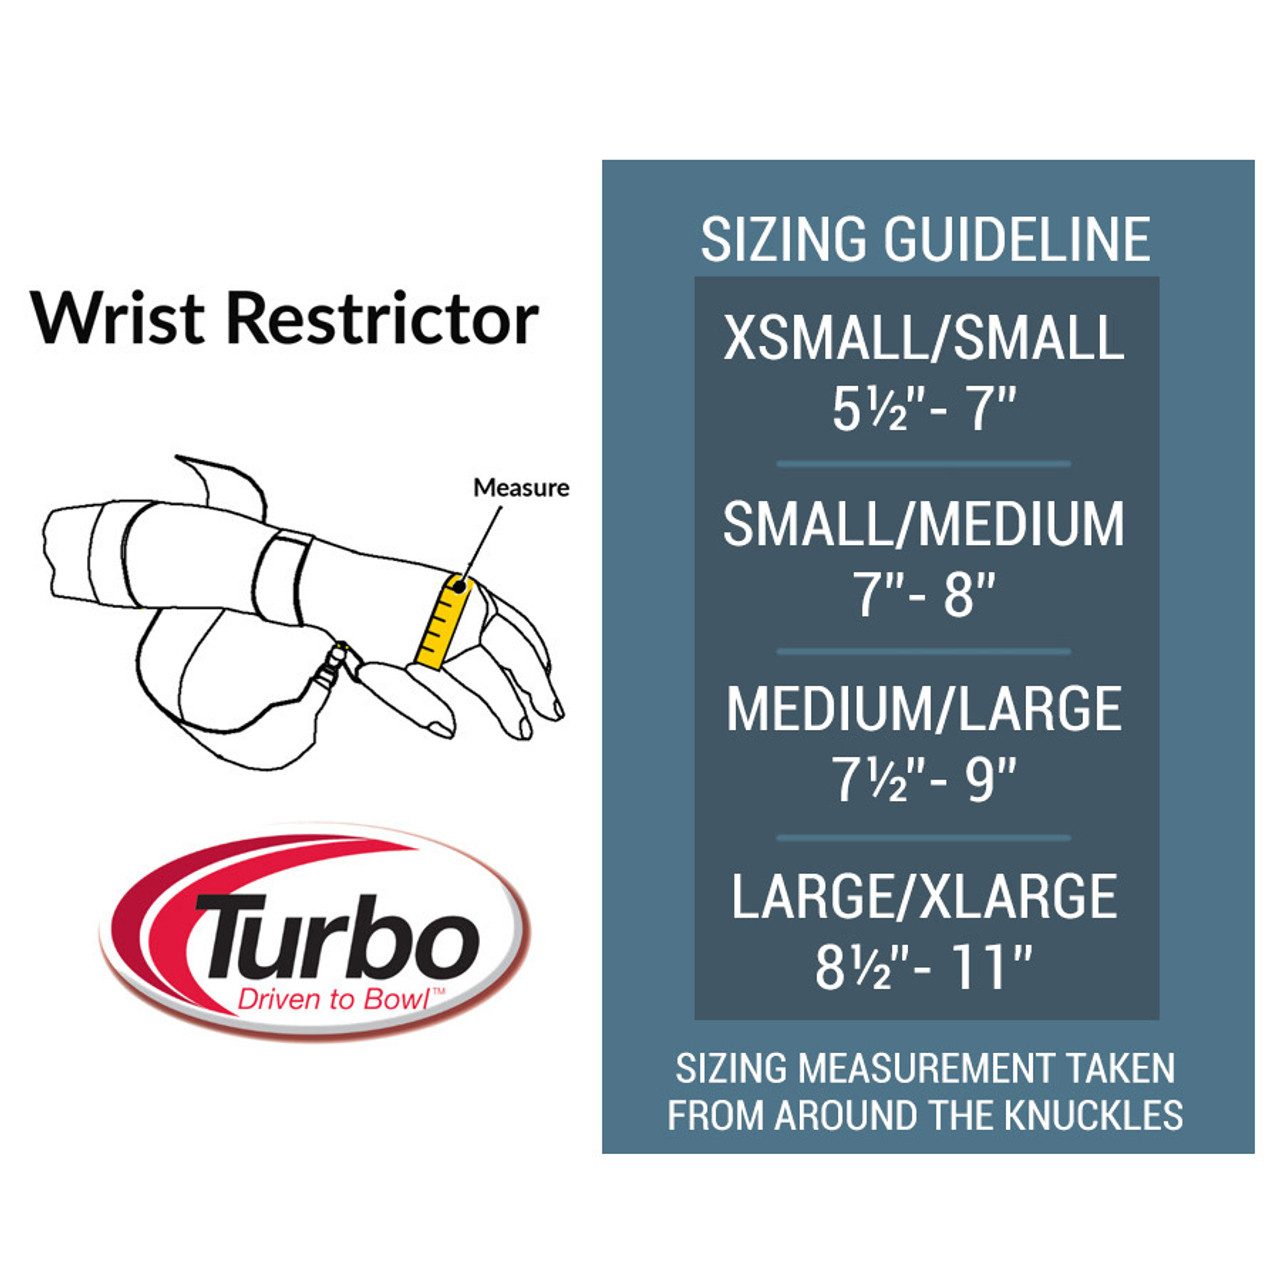 Turbo Wrist Restrictor Size Chart